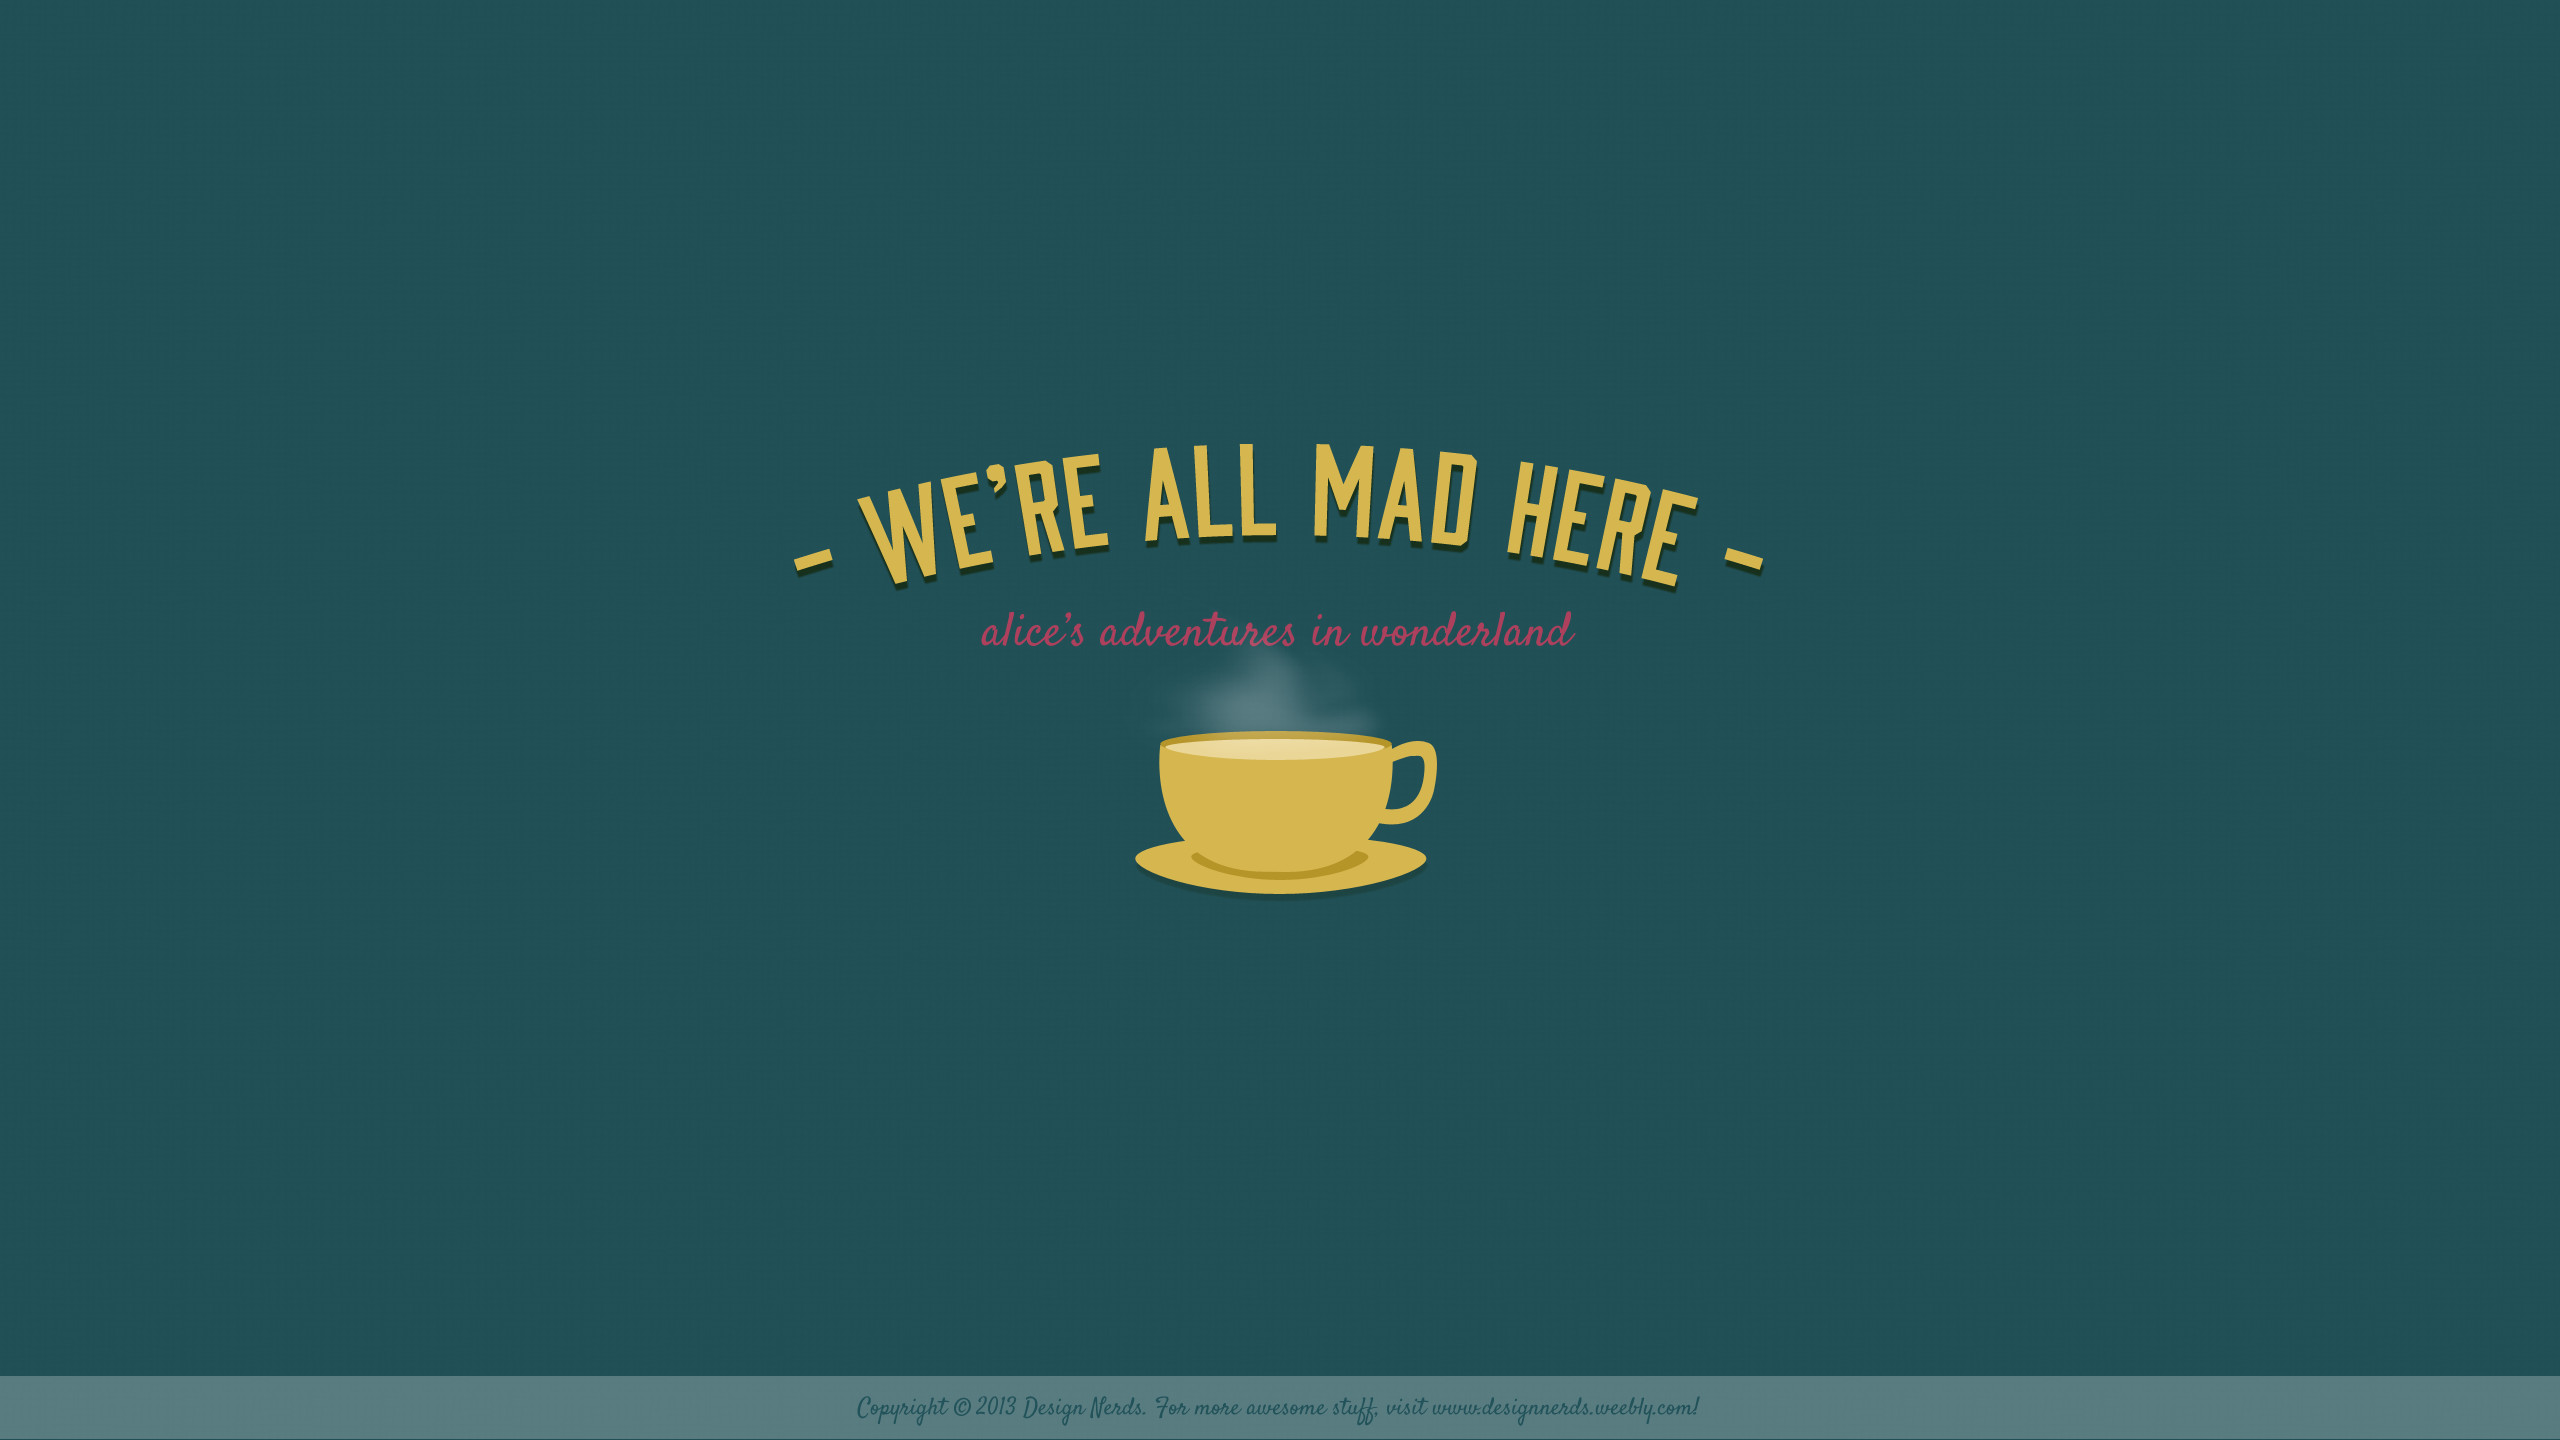 2560x1440 Teal All mad here desktop wallpaper background Alice And Wonderland Quotes,  Adventures In Wonderland,